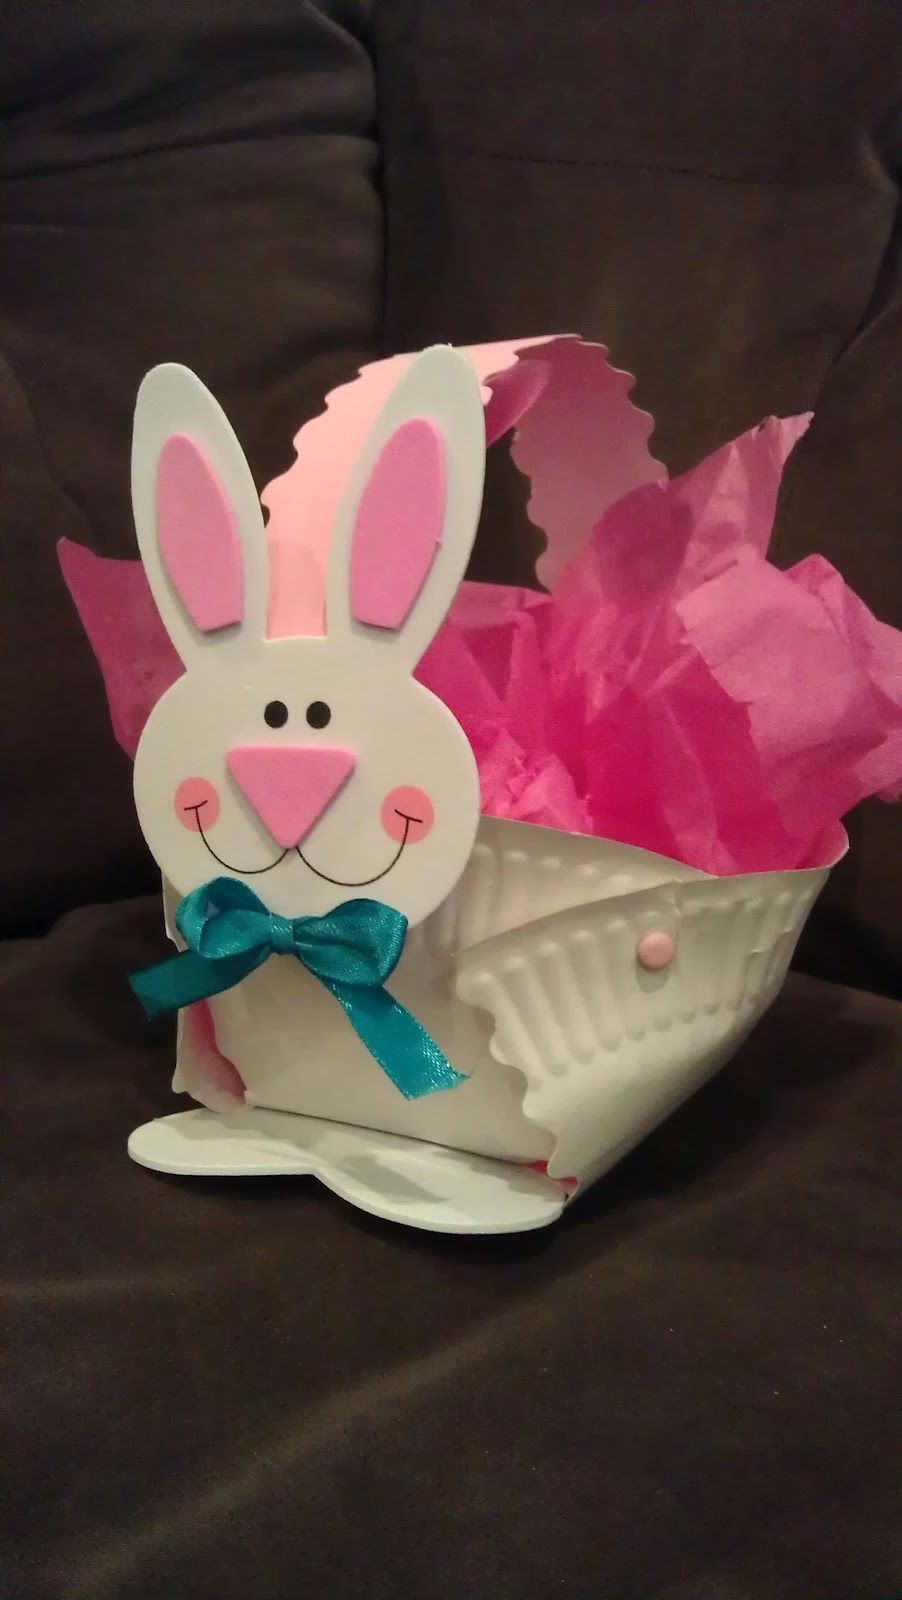 Bunny easter basket craft with a paper plate from the everyday bunny easter basket craft with a paper plate from the everyday life of a mother negle Gallery